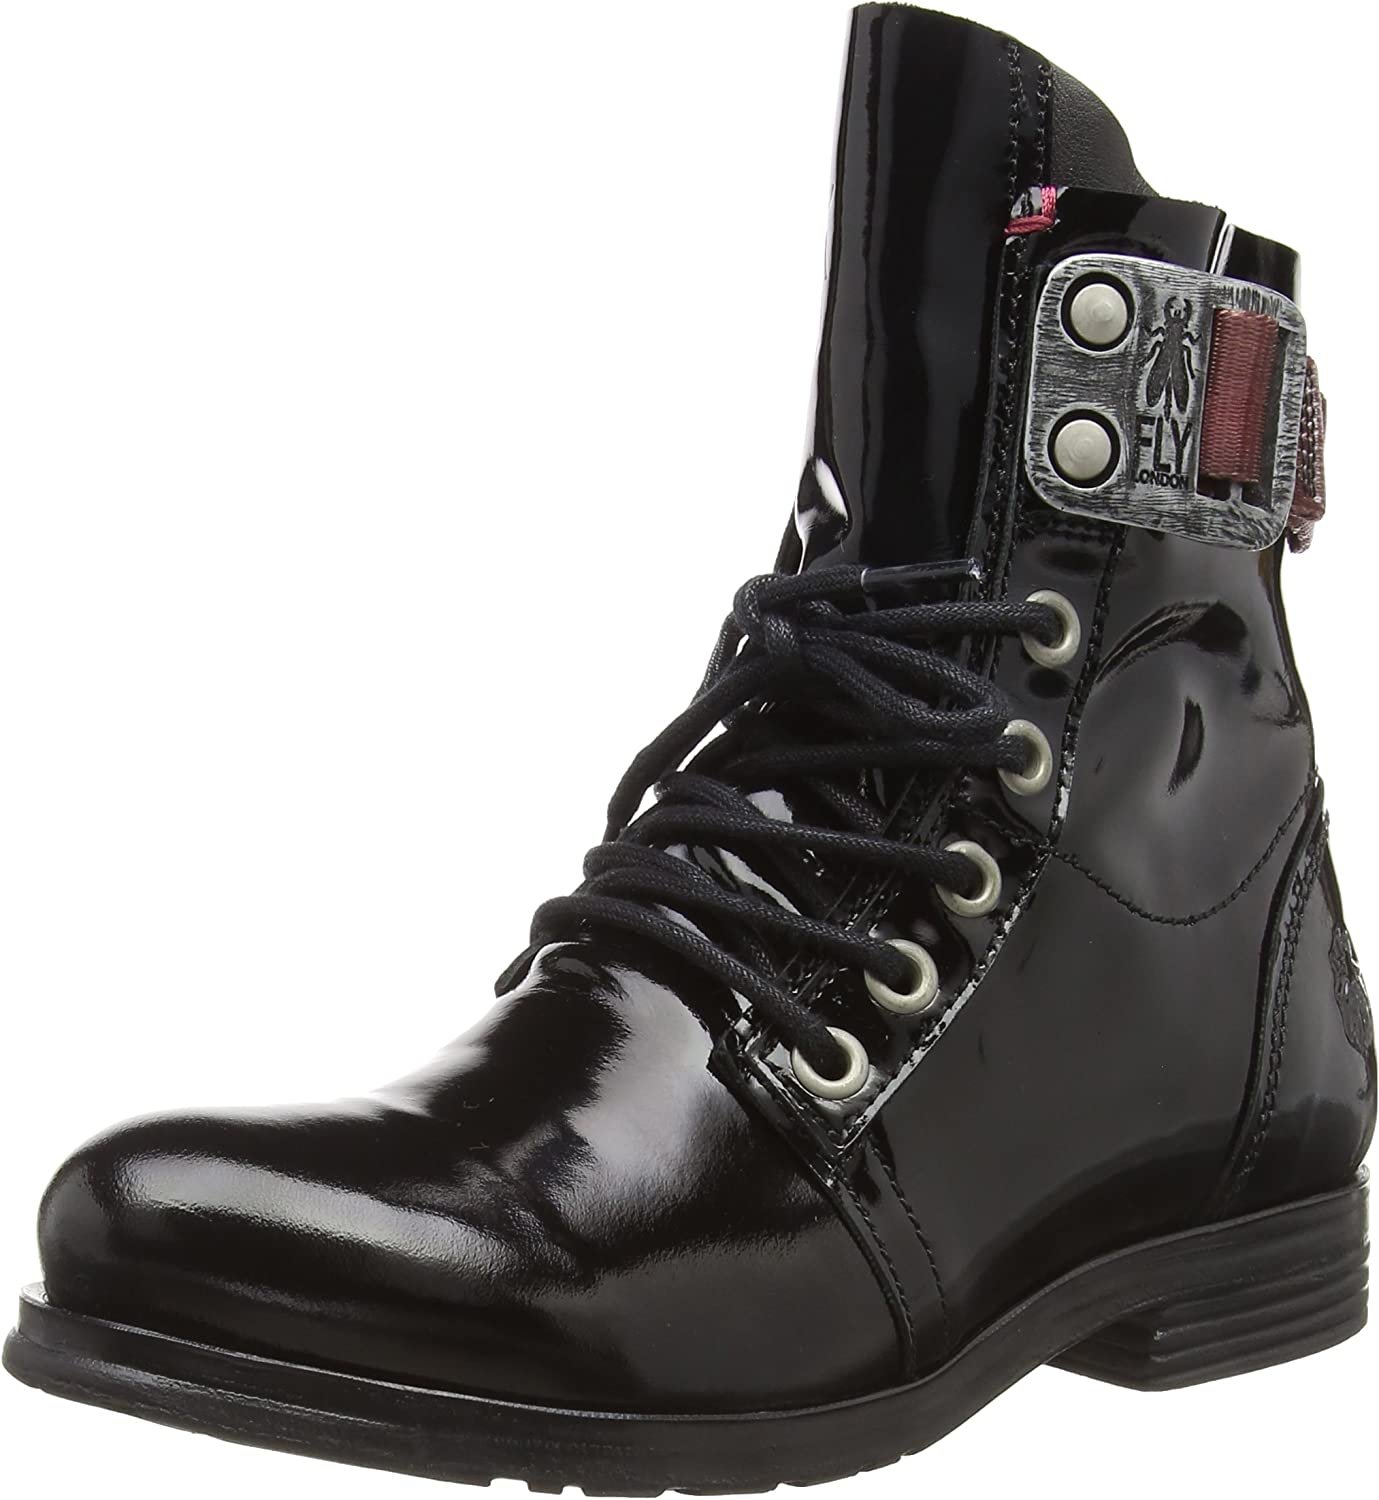 Fly London Stay, Botas Militar para Mujer